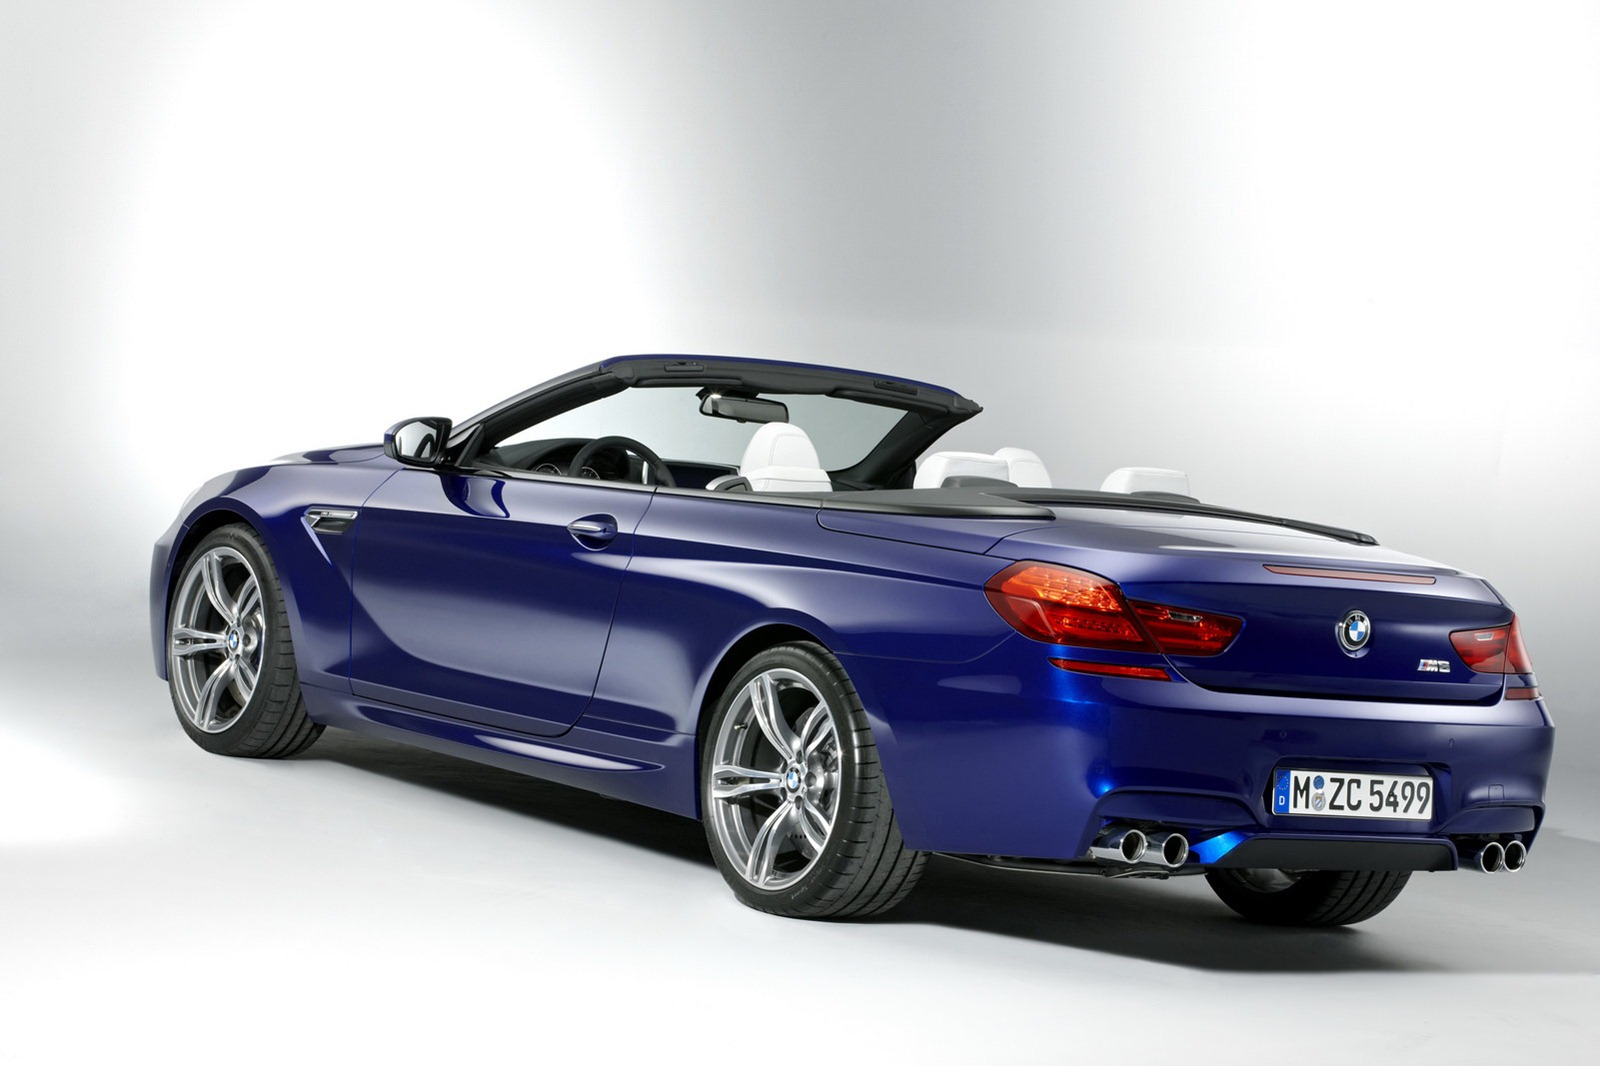 Allnew 2012 BMW M6 Coupe and Convertible Photos and Details